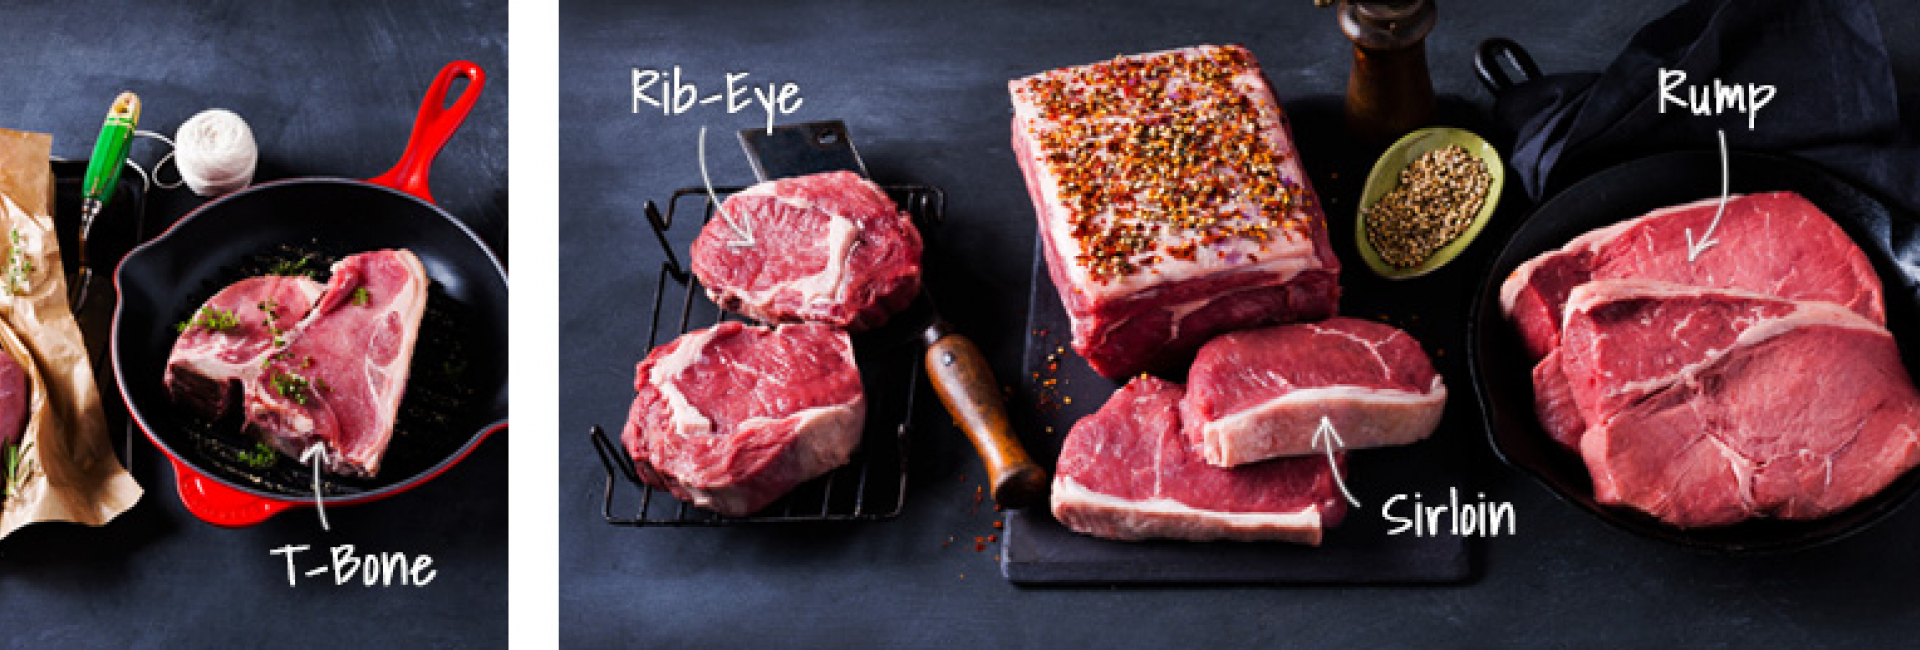 Wholesale Meat South Africa   n1